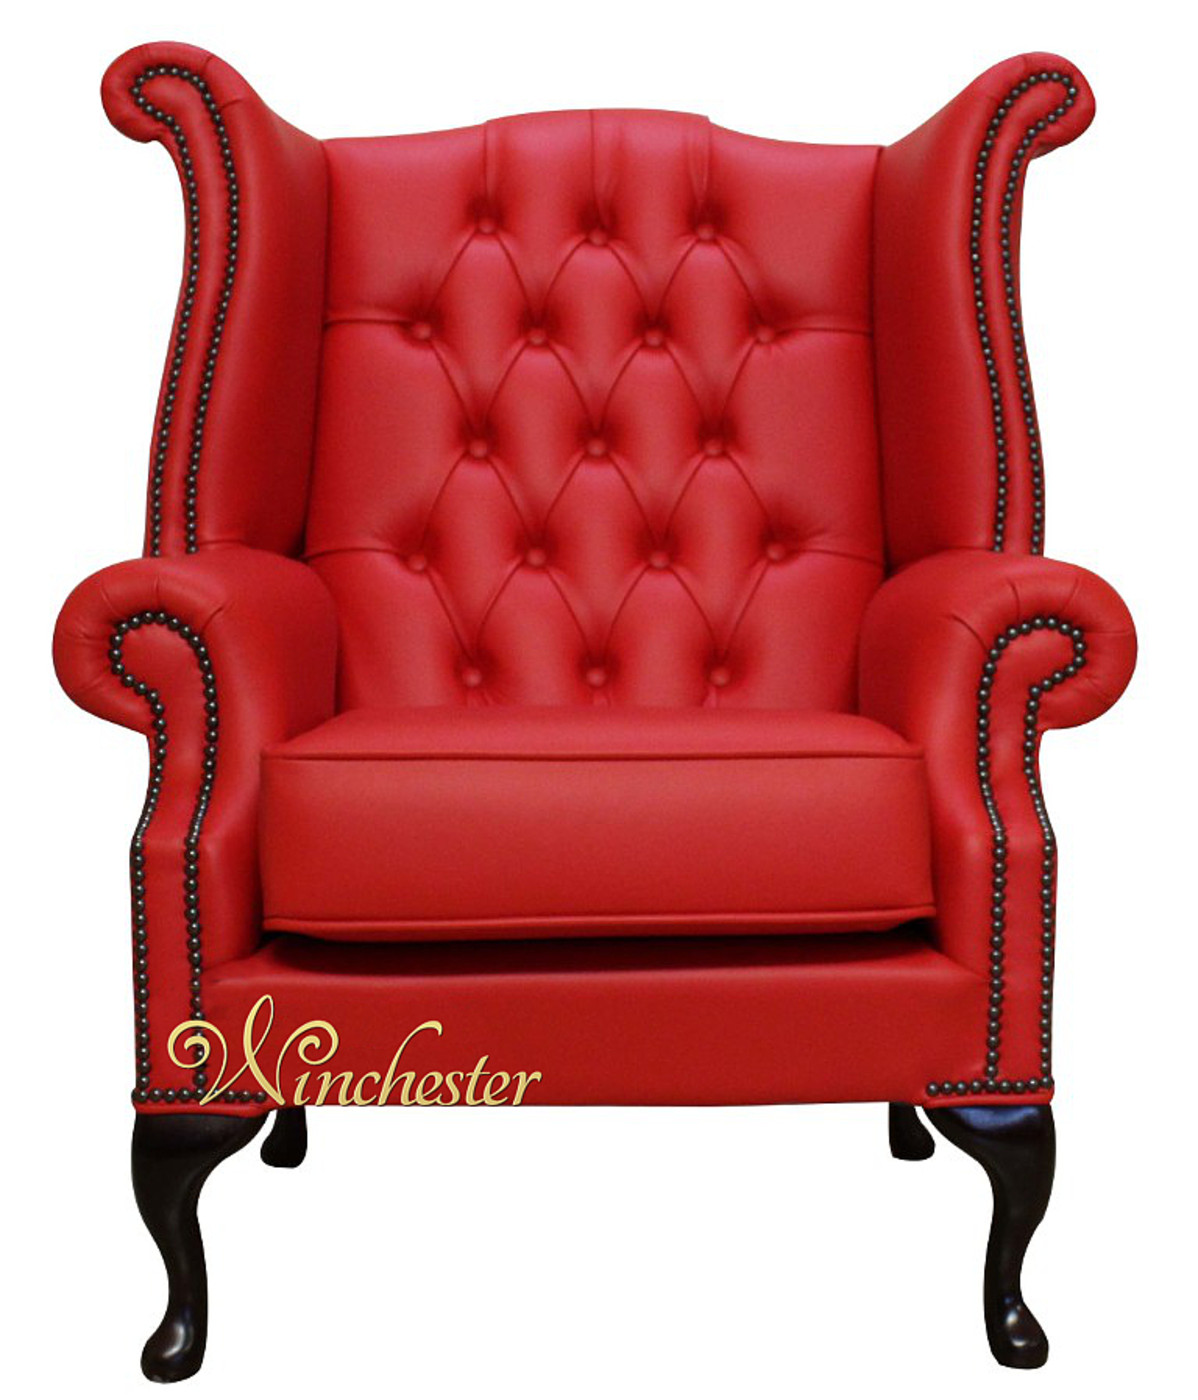 Chesterfield Flame Red Leather Armchair Wc